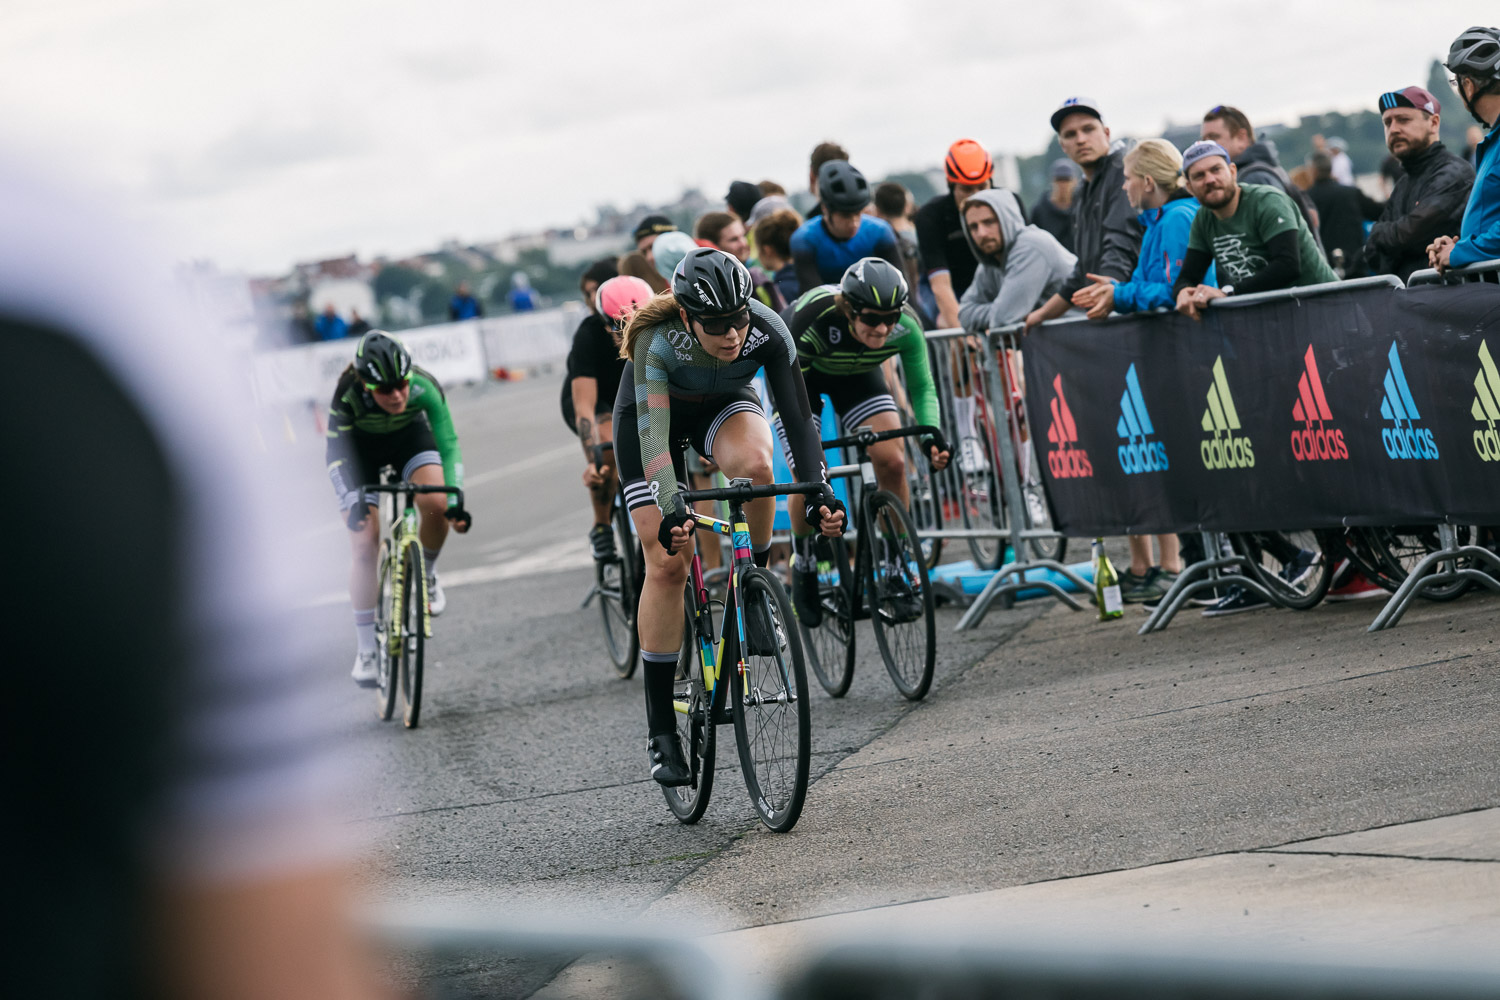 8bar-crit-fixed-gear-bike-race-stefanhaehnel-wmn-fxd-final-26